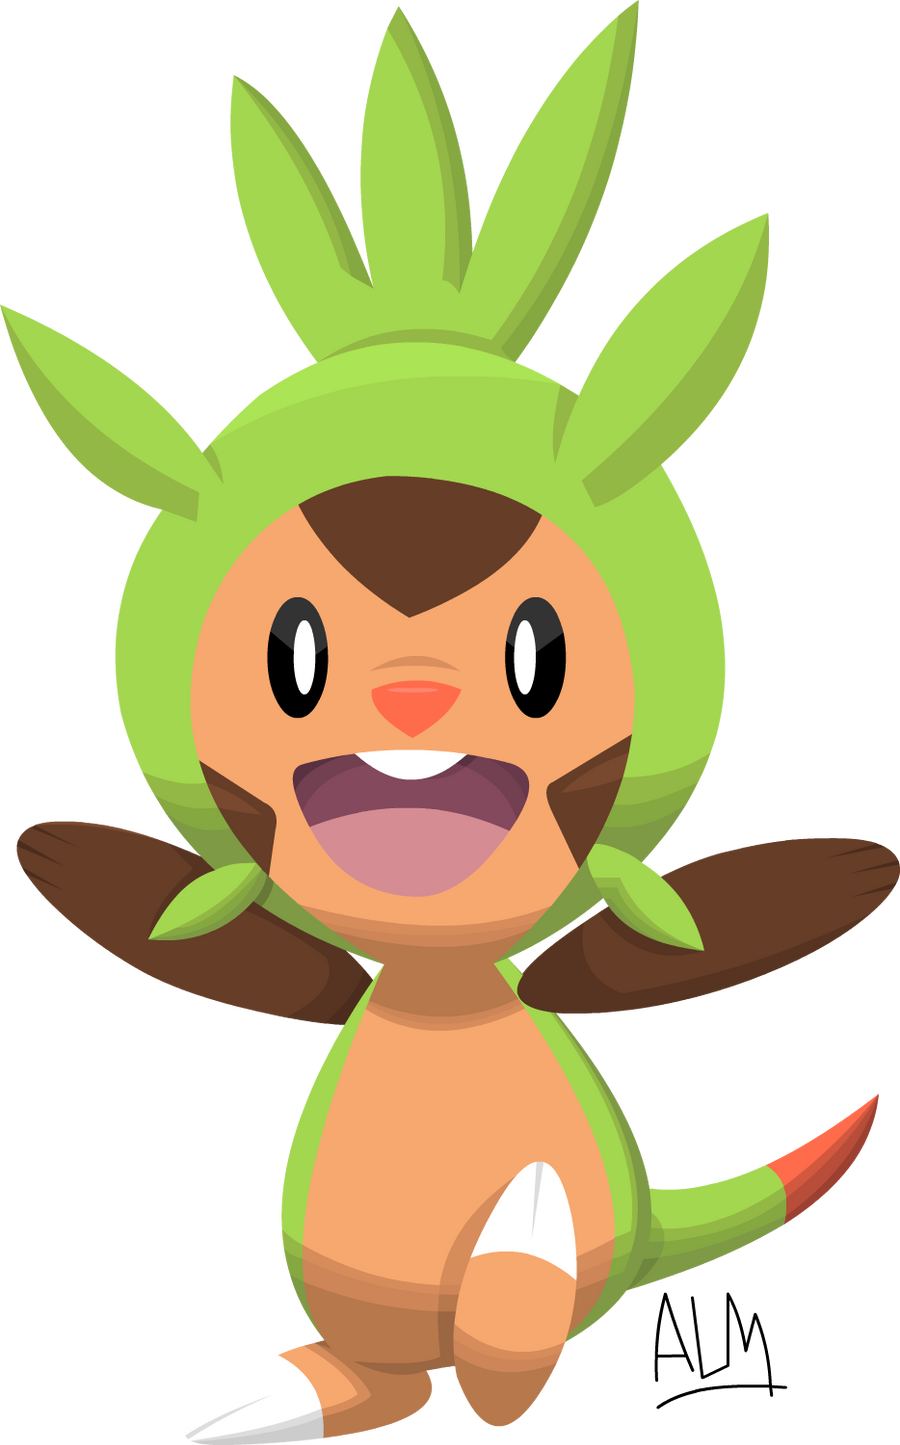 Chespin Pokemon 6th Gen by SuperAj3